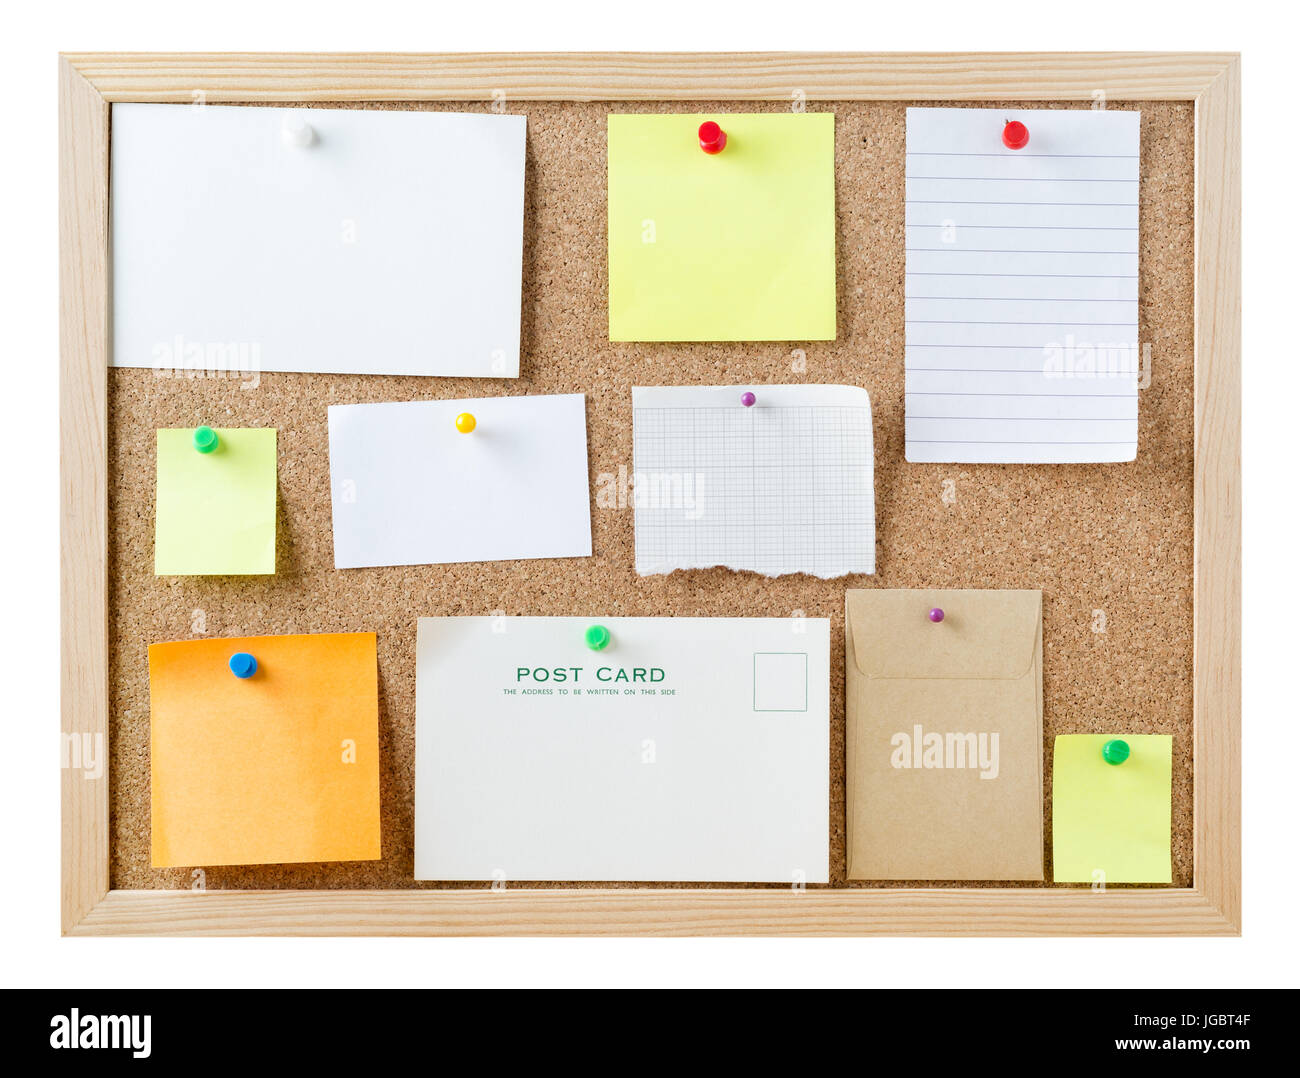 A cork pinboard, isolated on white, with a variety of pushpins sticky notes, cards and pieces of paper, left blank - Stock Image